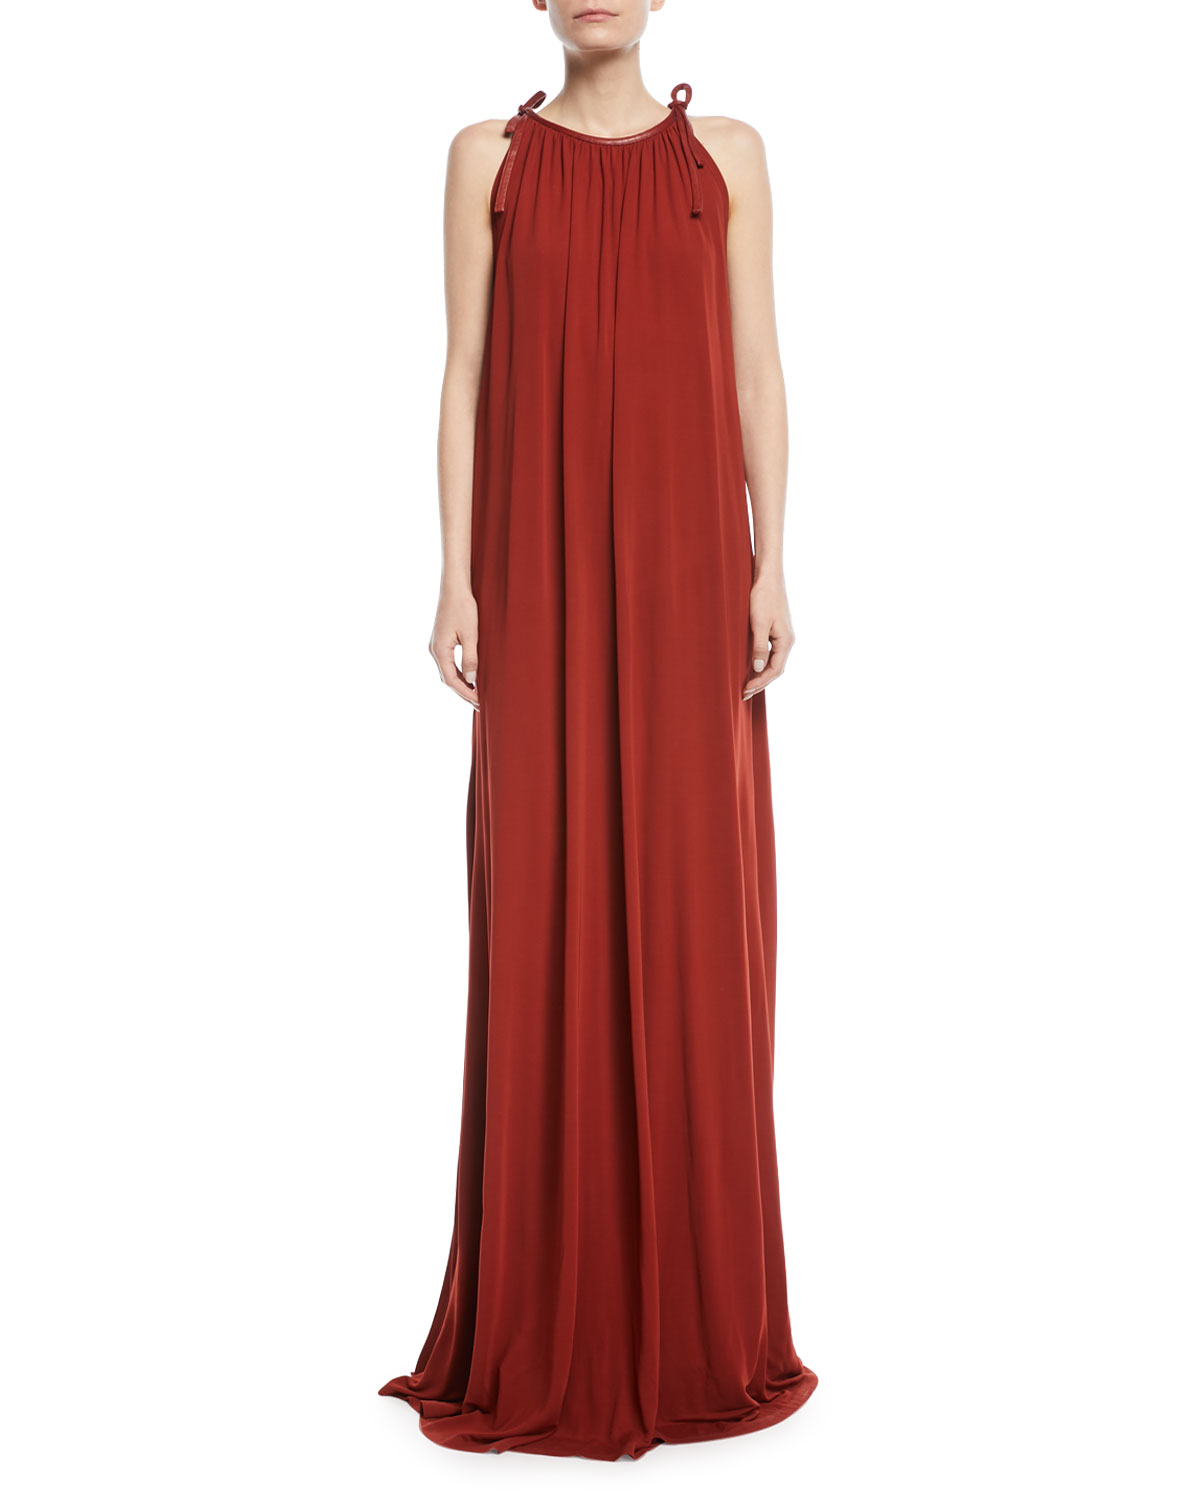 d26549ff757 Rosetta Getty Halter Tie-Neck Crepe Jersey Maxi Dress w  Leather Trim